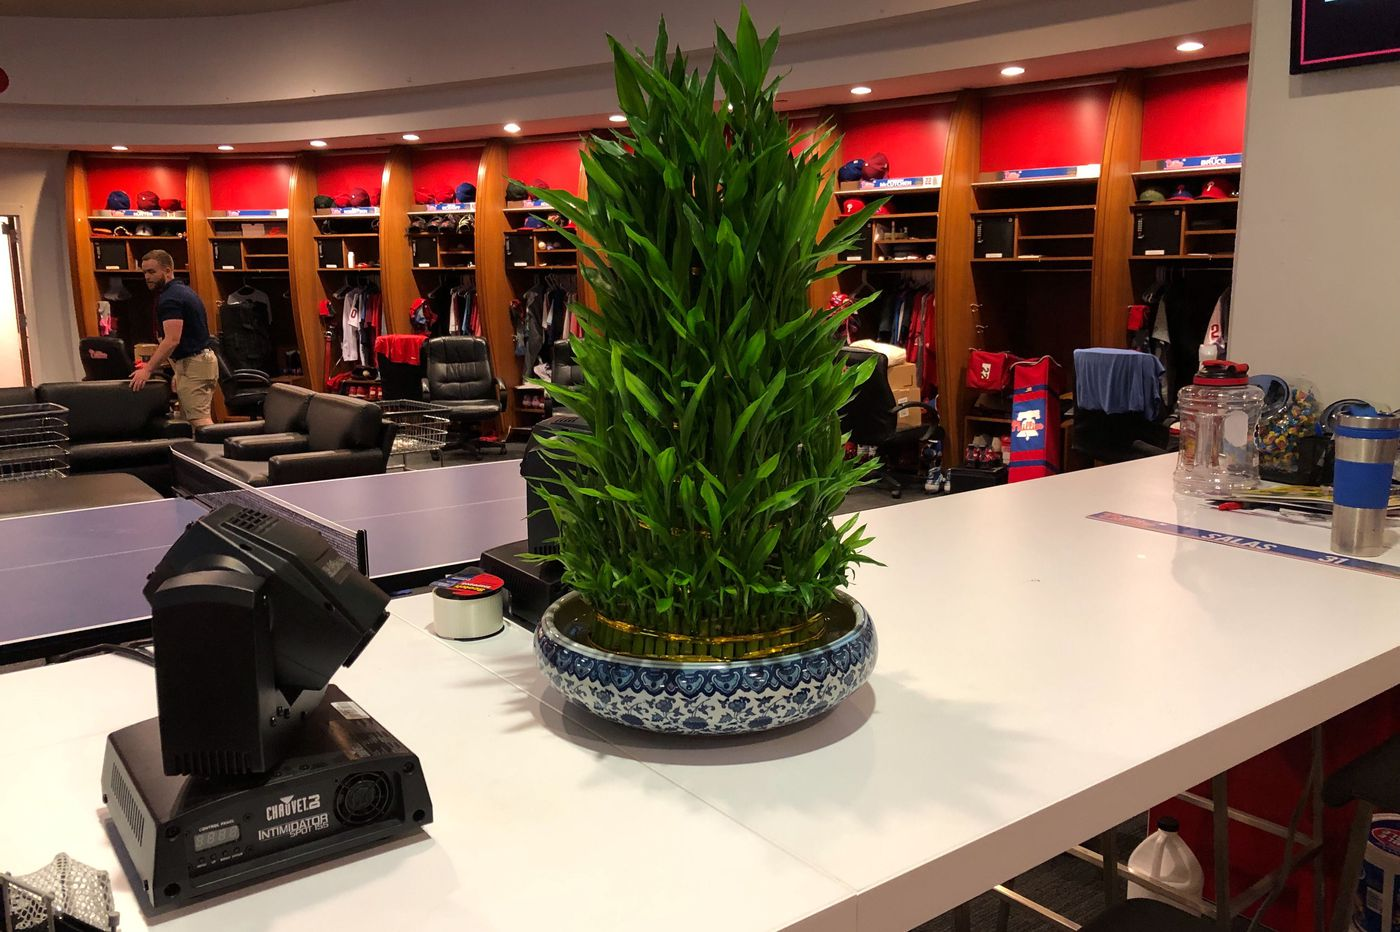 The Phillies lost seven straight games, so Brad Miller bought lucky bamboo in Chinatown